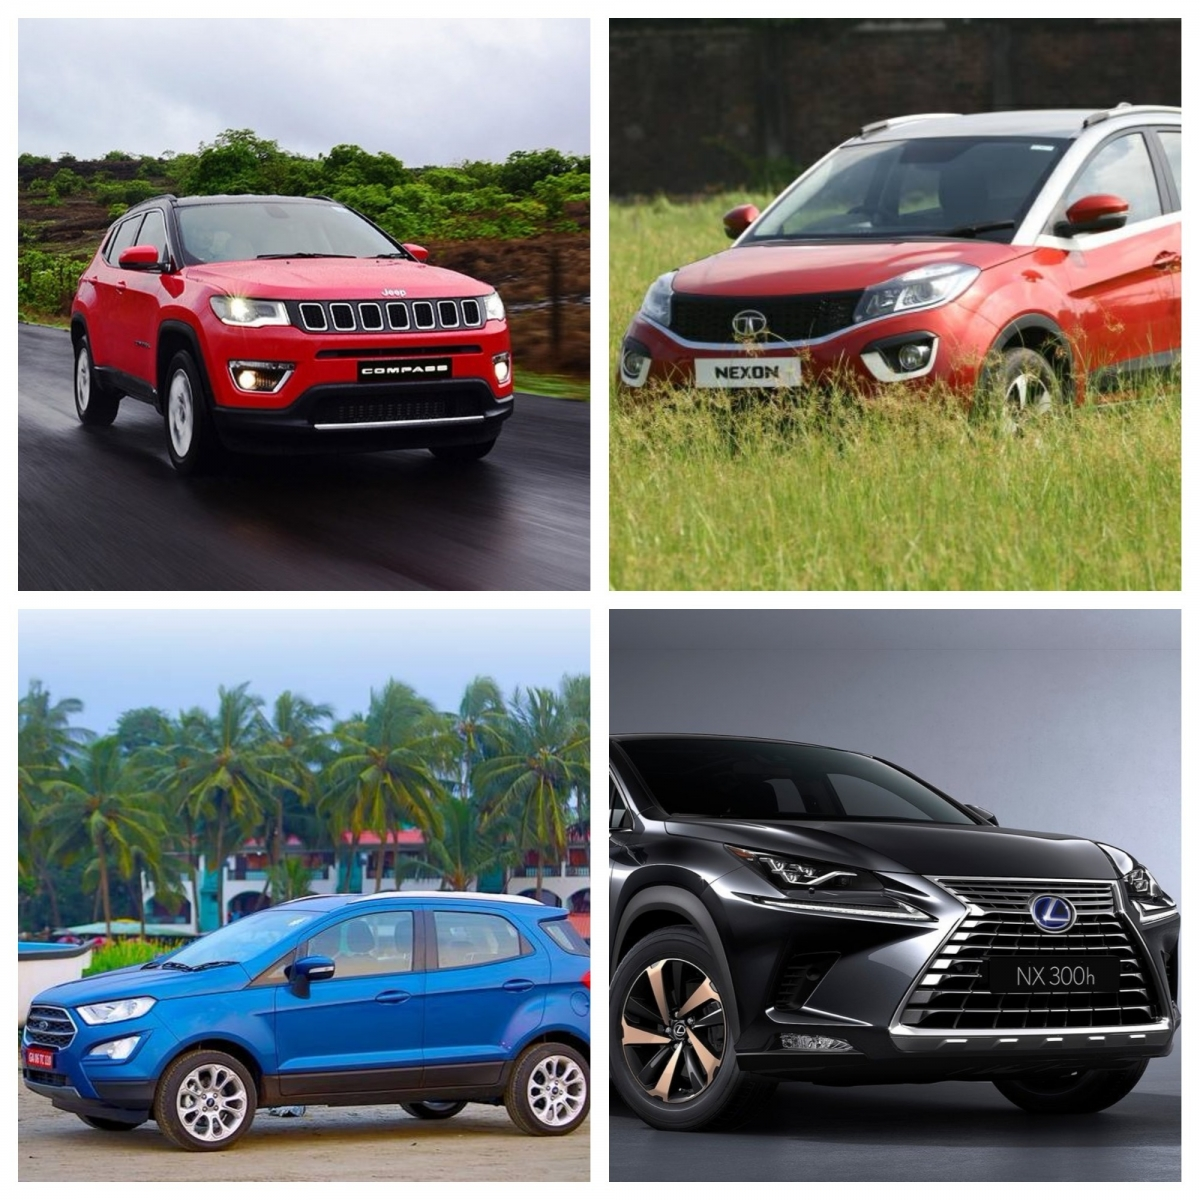 Best Of 2017: A Look At Tata Nexon, Jeep Compass, New Ford